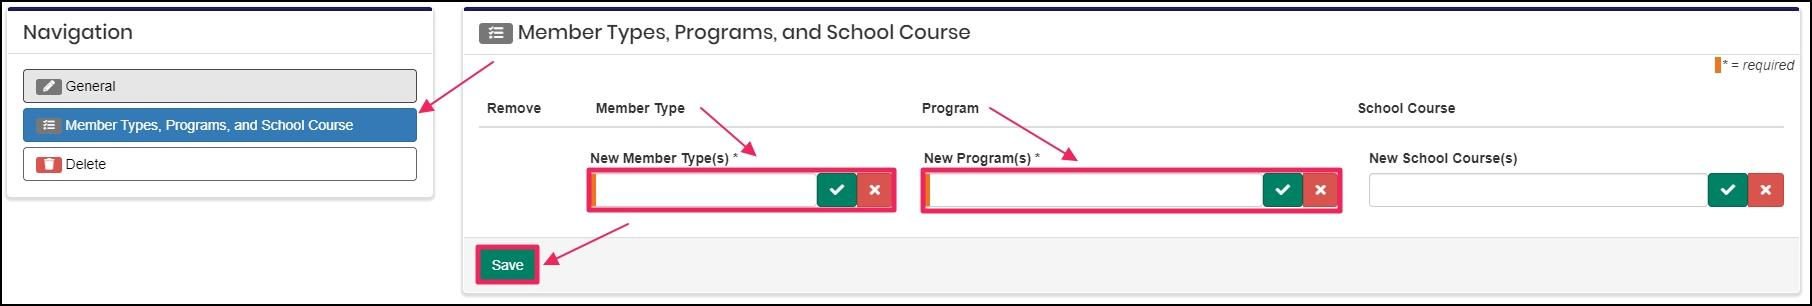 "image arrow pointing to ""Member Types, Programs, and School Course"" tab. Arrows are pointing to the highlighted fields: ""New Member Type(s)"" and ""New Program(s)."" Arrow showing the save button at the bottom of the page"